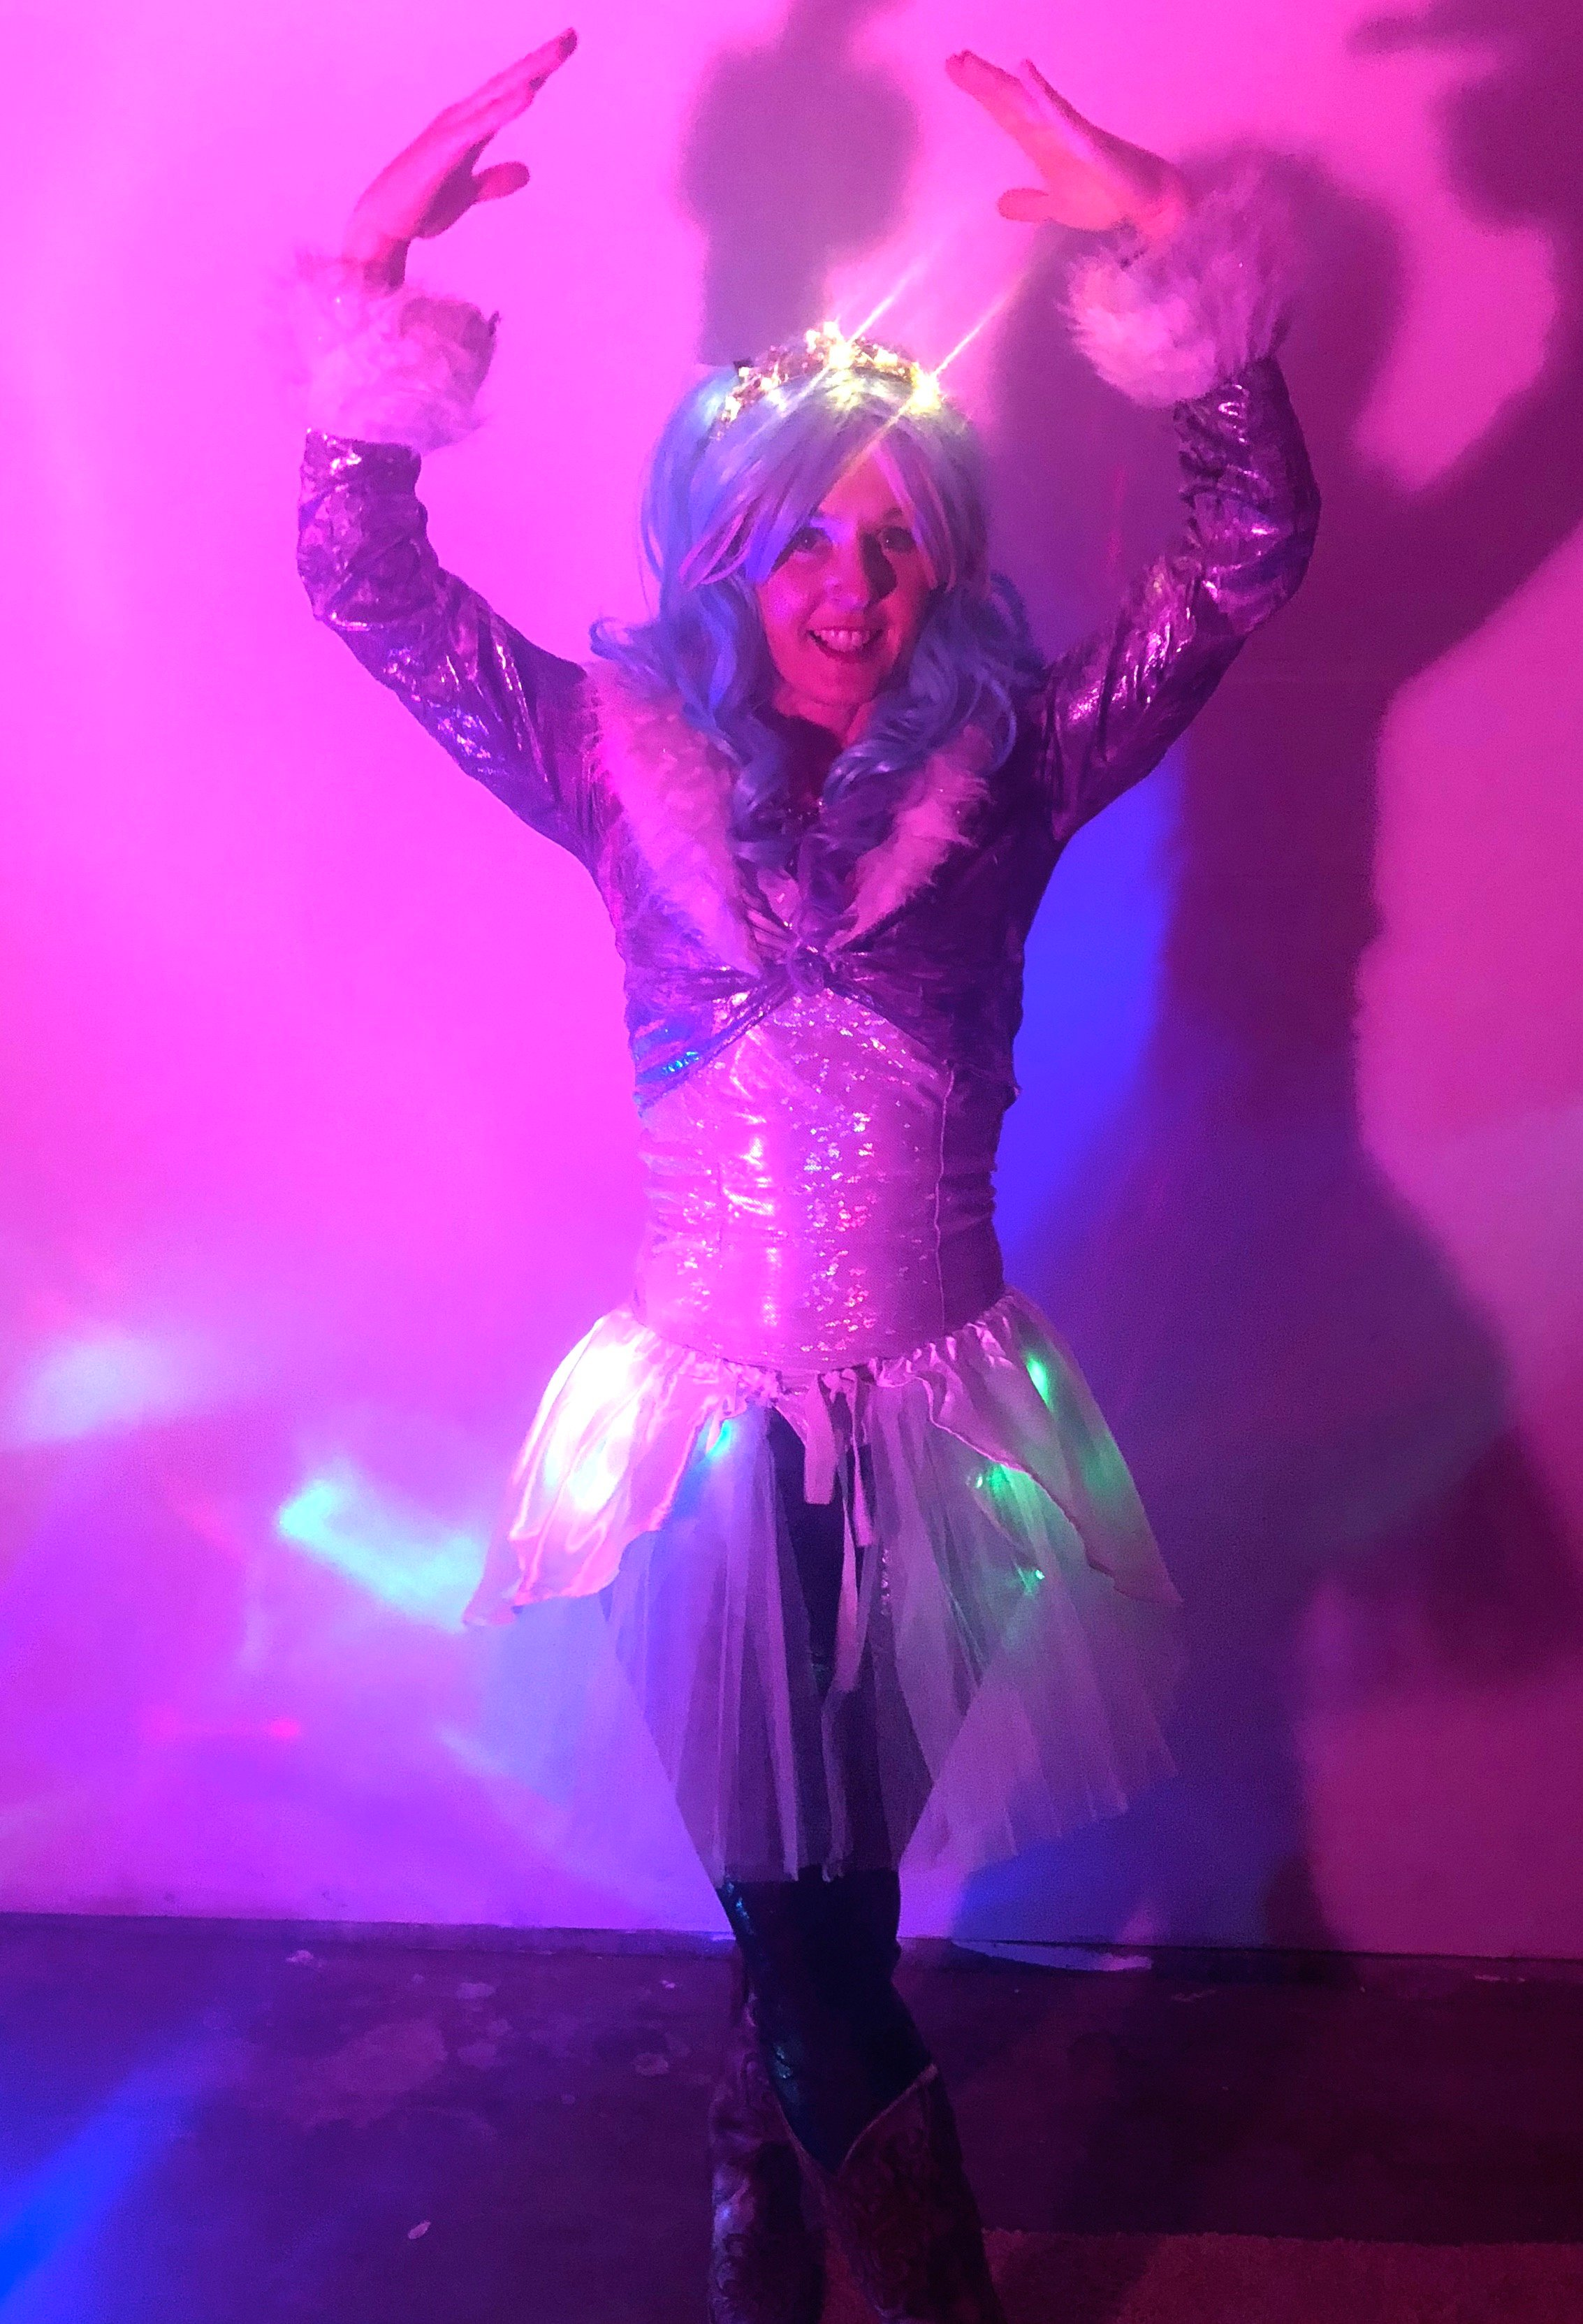 wearables_light_up_tutu_costume.jpg